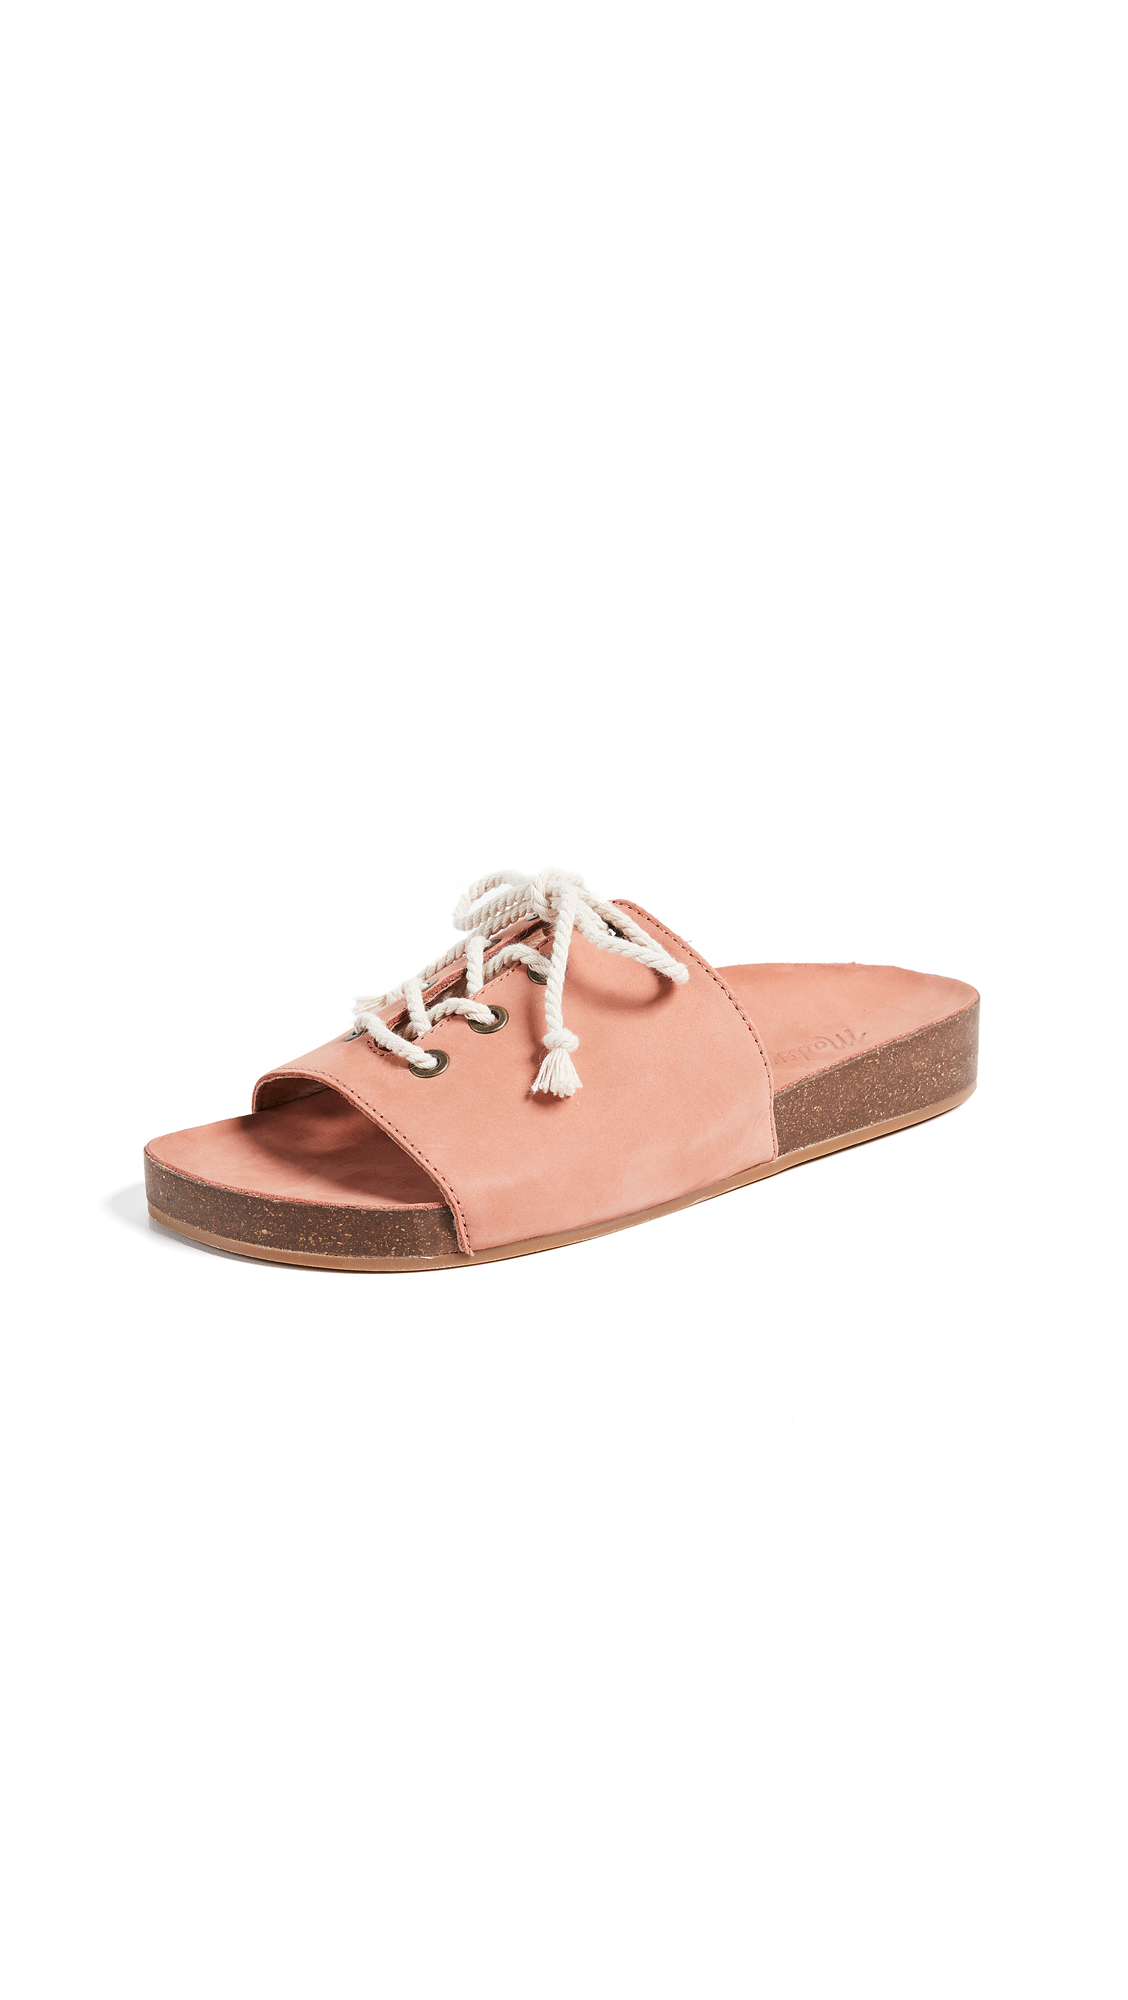 Madewell The Aileen Slide Sandals - Spiced Rose